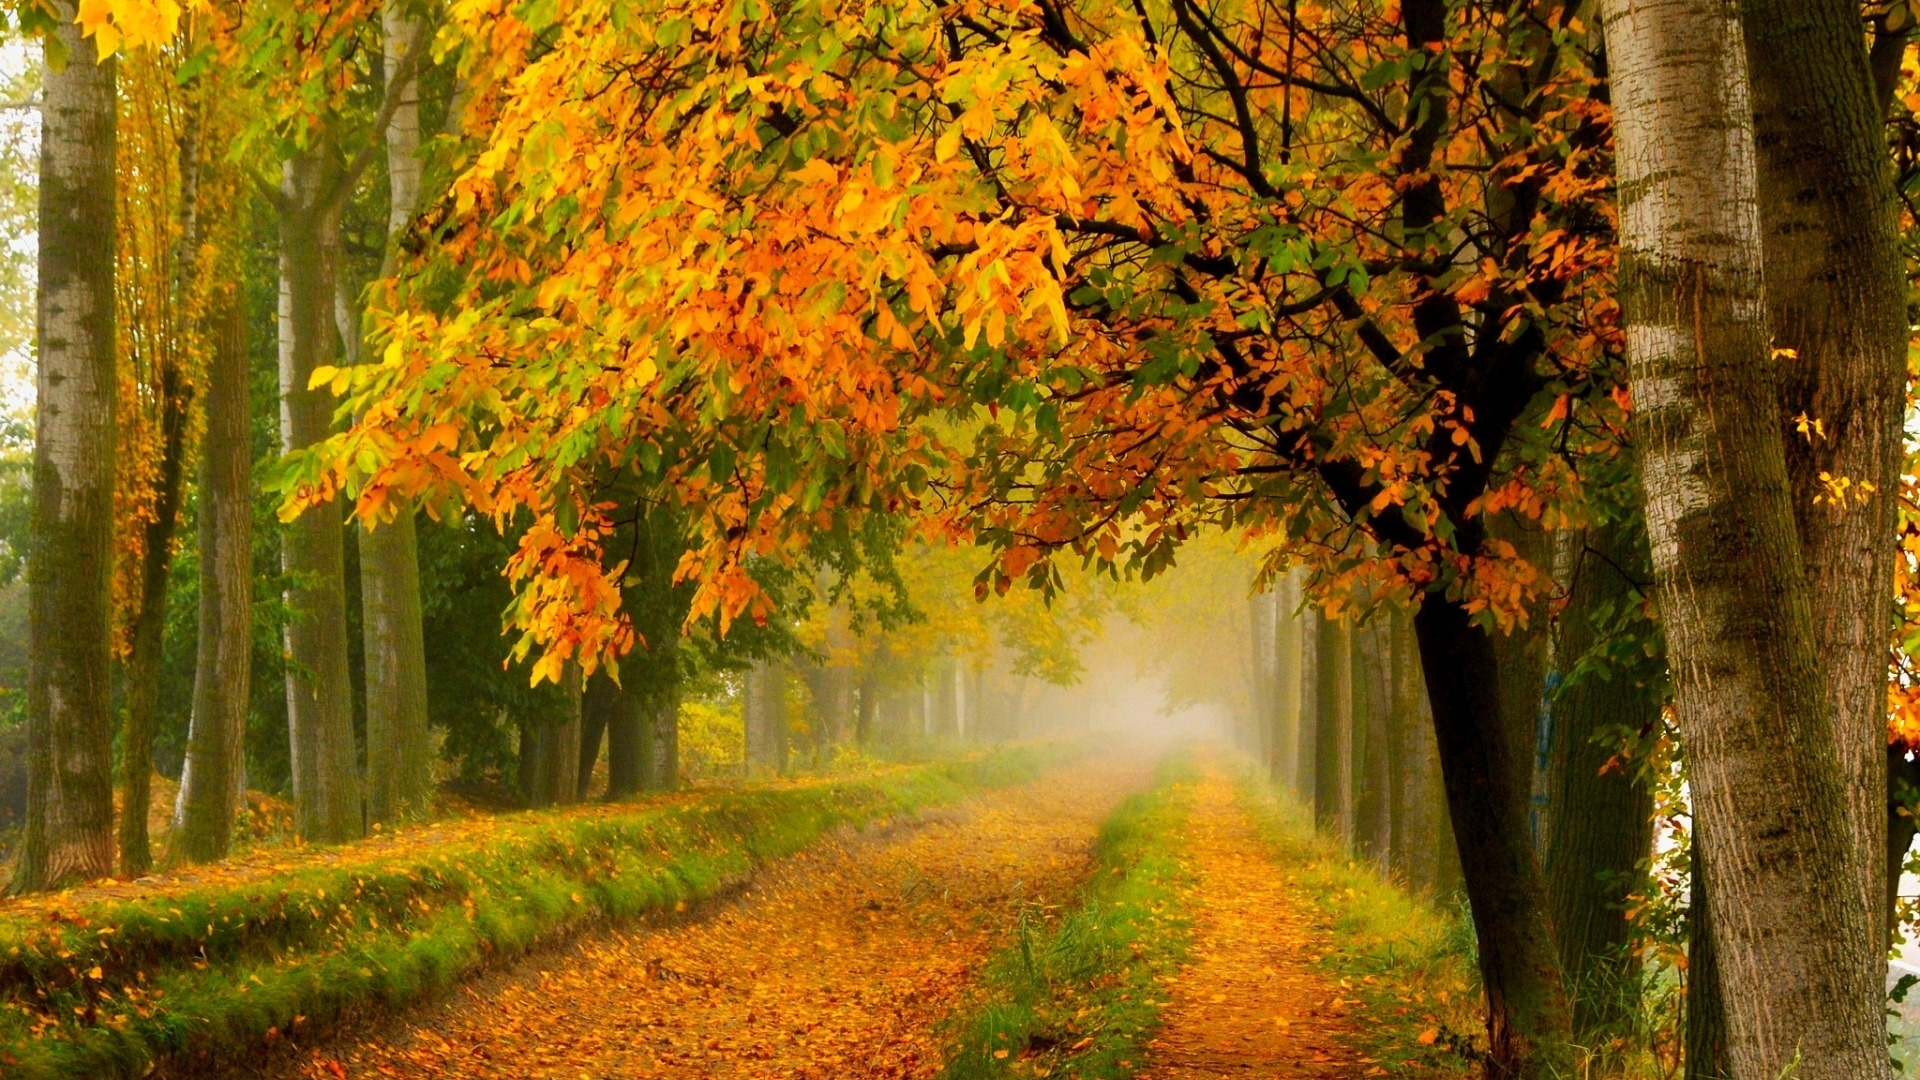 Colorful-Autumn-Fall-Forest-Park-1920-x-1080-Need-iPhone-S-Plus-Backgro-wallpaper-wp3404028